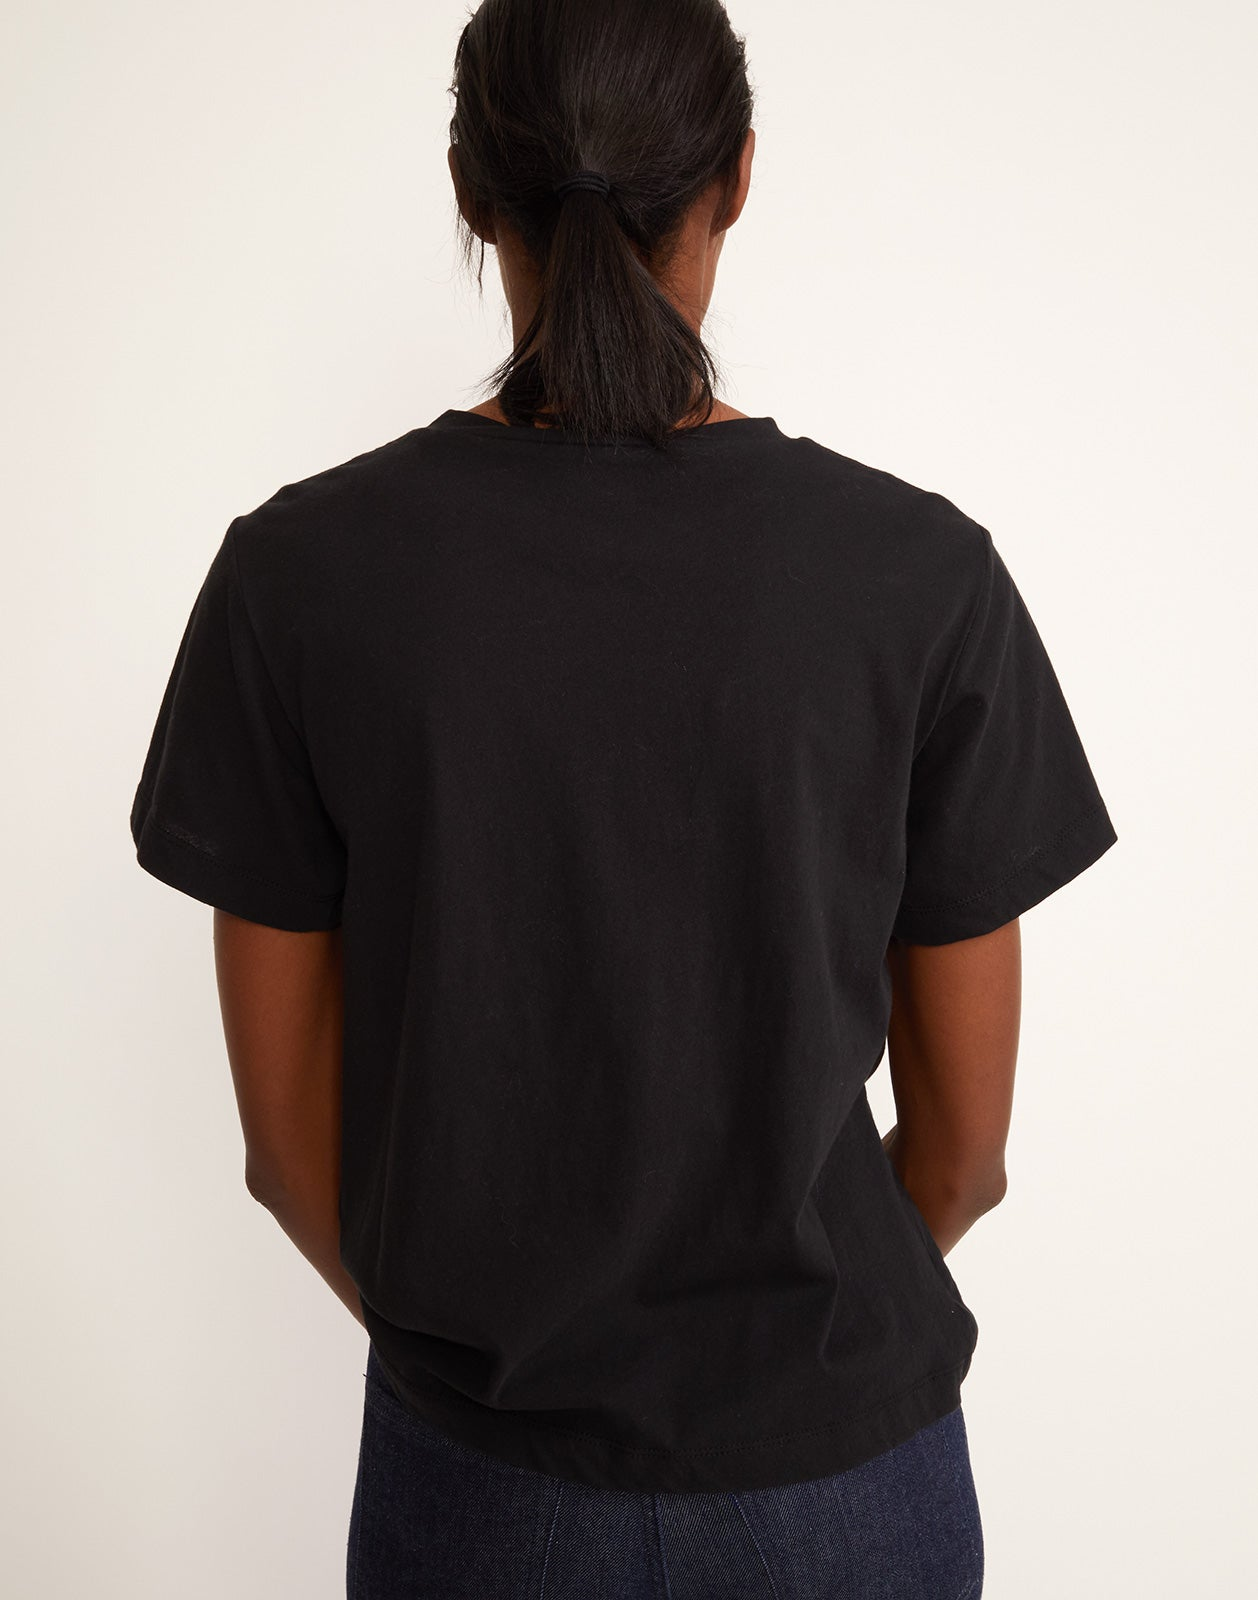 Back view of 'lovedove' printed tee in black.